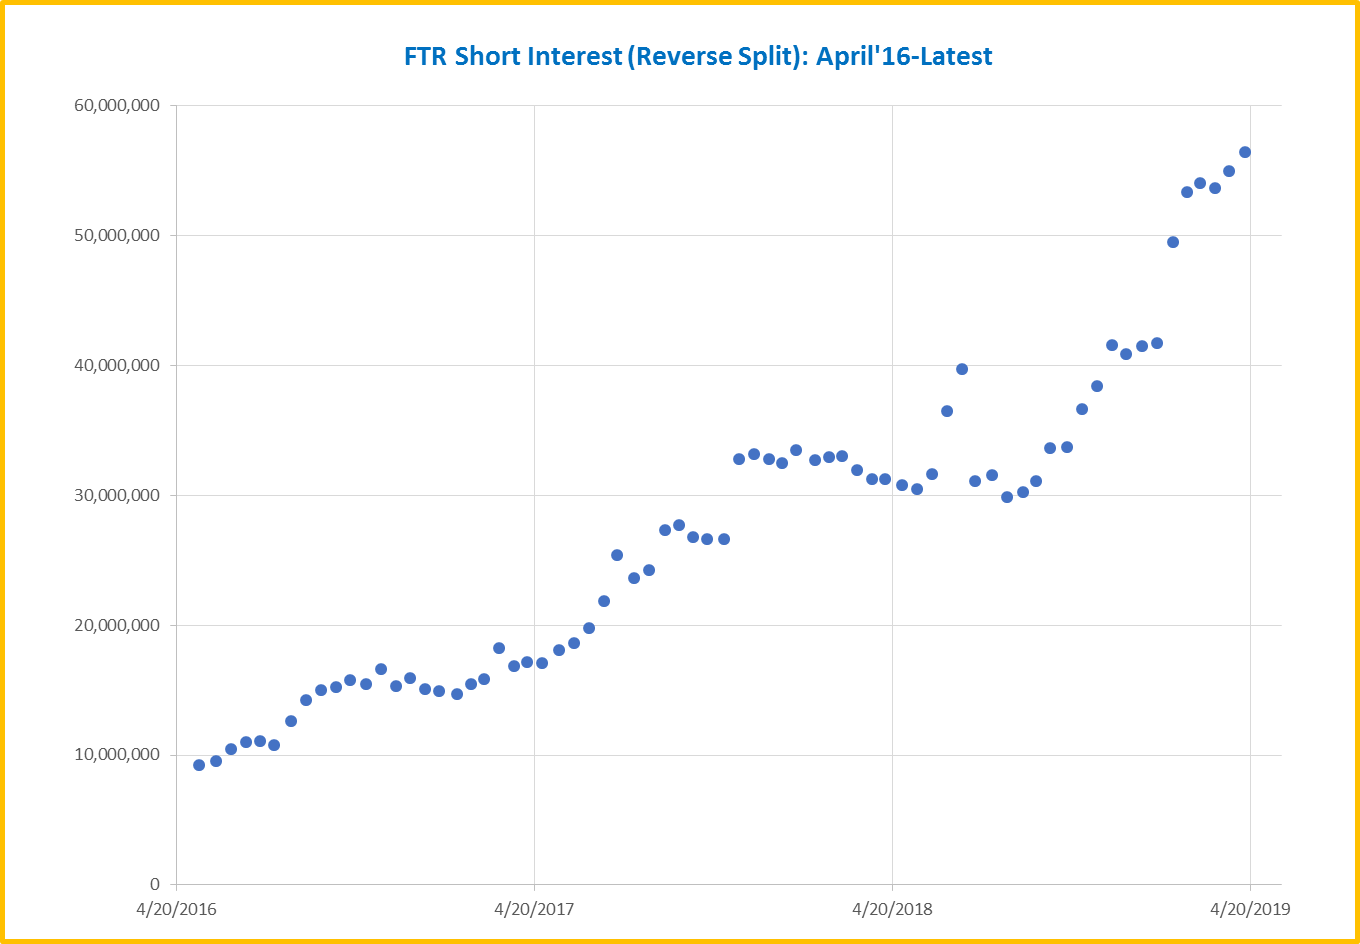 Frontier Communications: Short Interest Surges And Daily Volume Ebbs As We Approach Q1 2019 Earnings